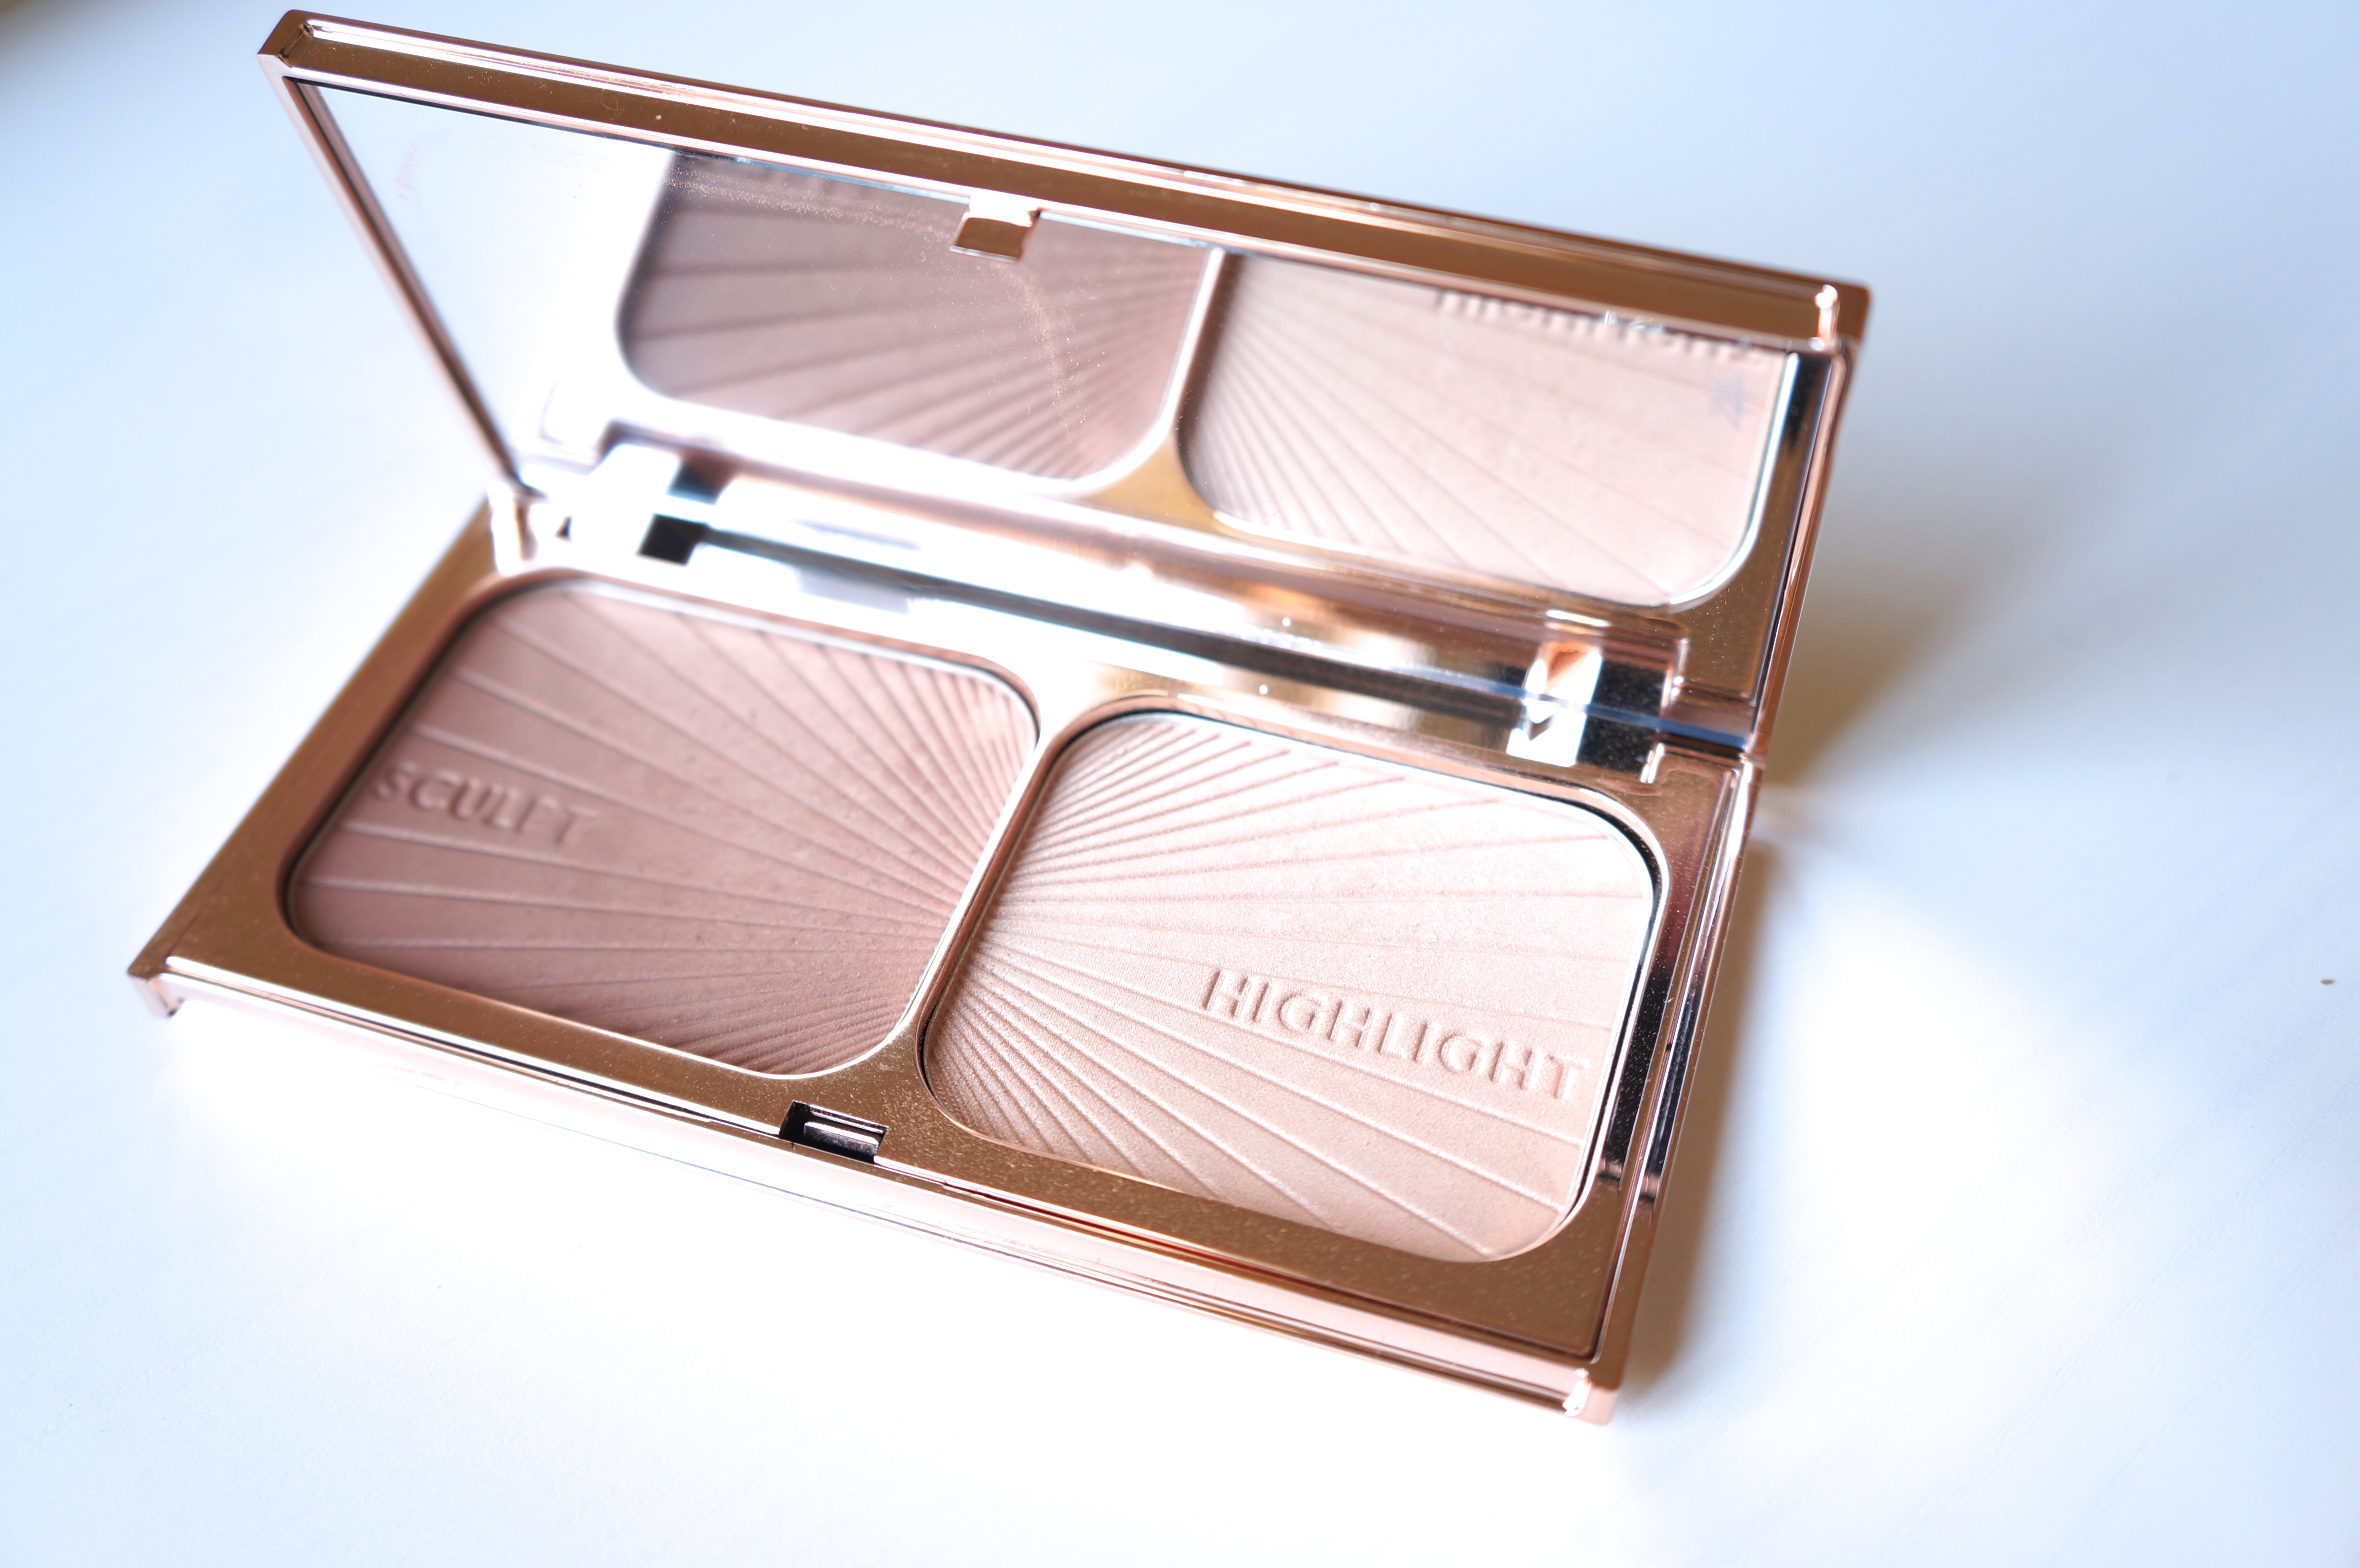 Filmstar Bronze & Glow by Charlotte Tilbury/ Pic by 1FDLE.